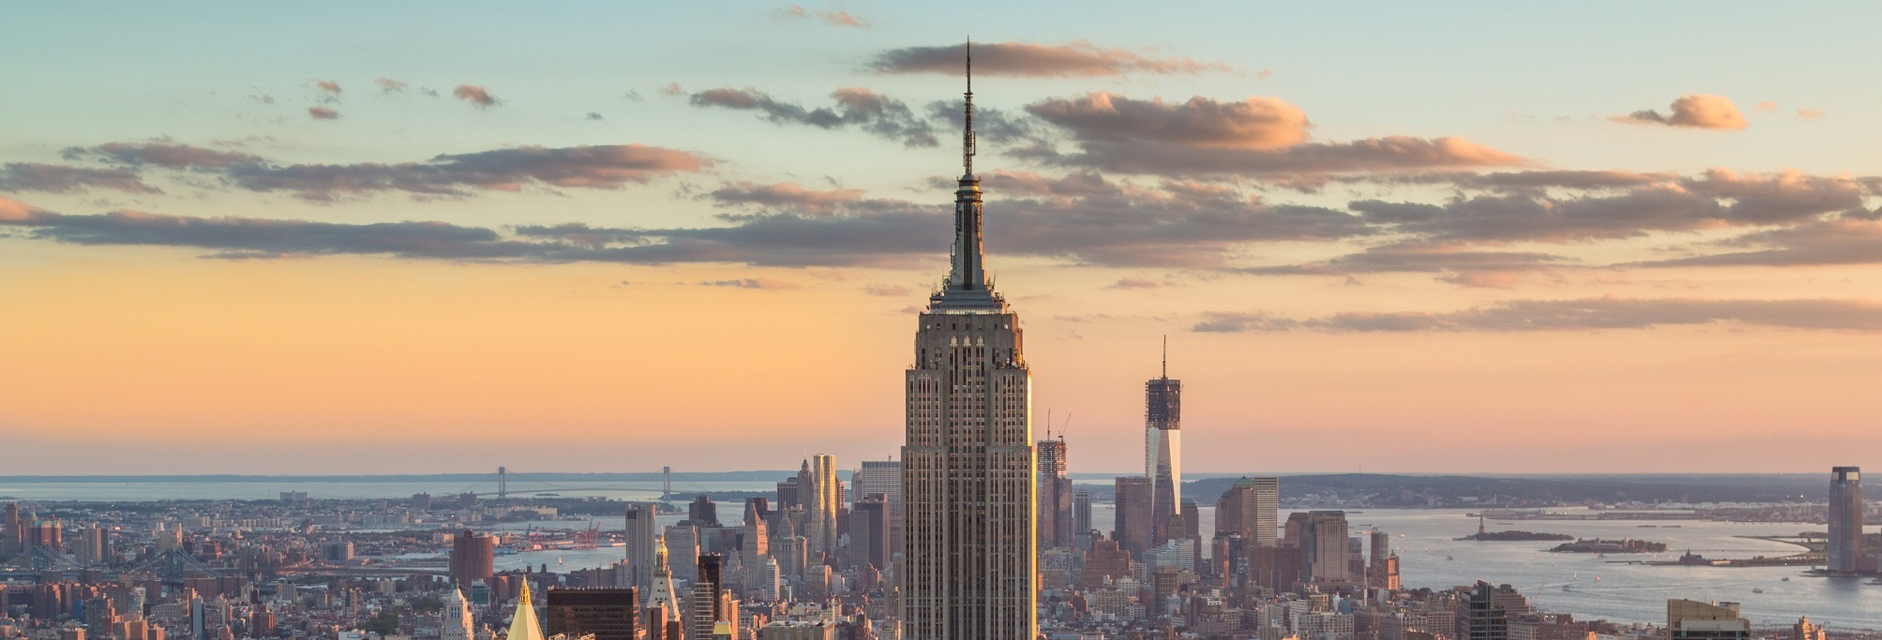 Sunset aerial view of the top of the Empire State Building and cityscape — Photo courtesy of Sam valadi [CC BY 2.0 (https://creativecommons.org/licenses/by/2.0)]